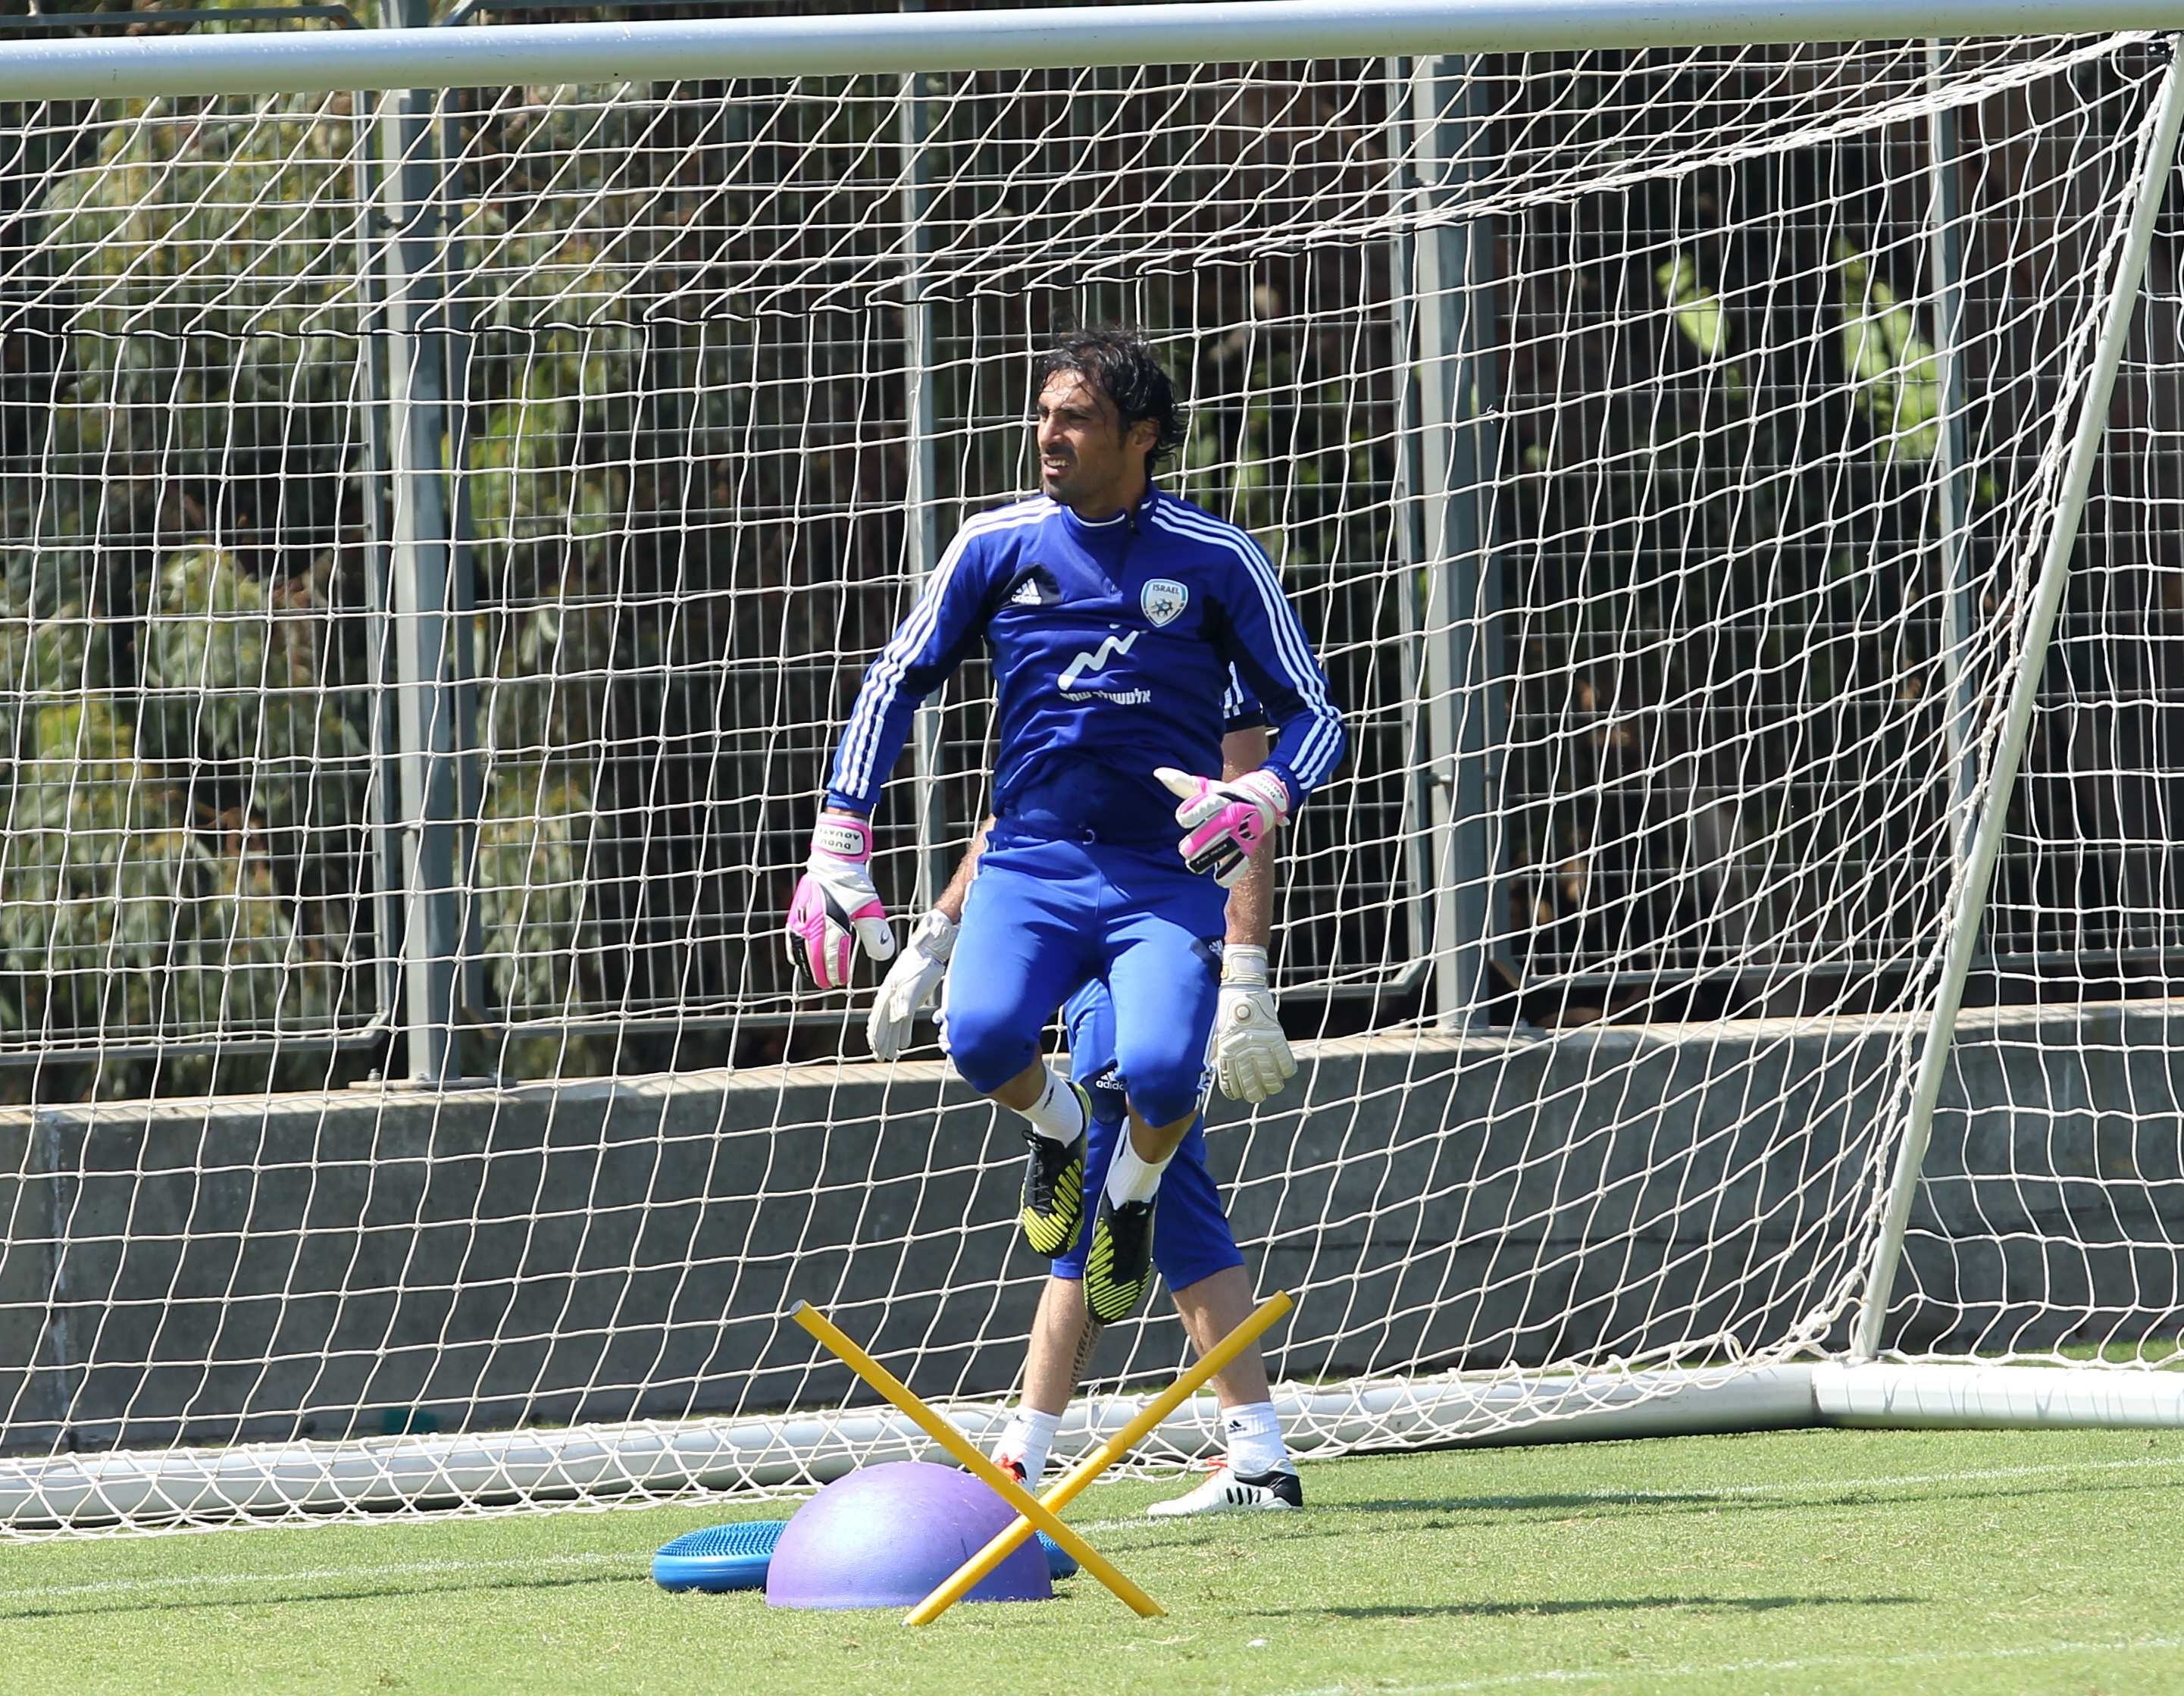 Israel 'keeper Dudu Aoute-Israel Football Association website